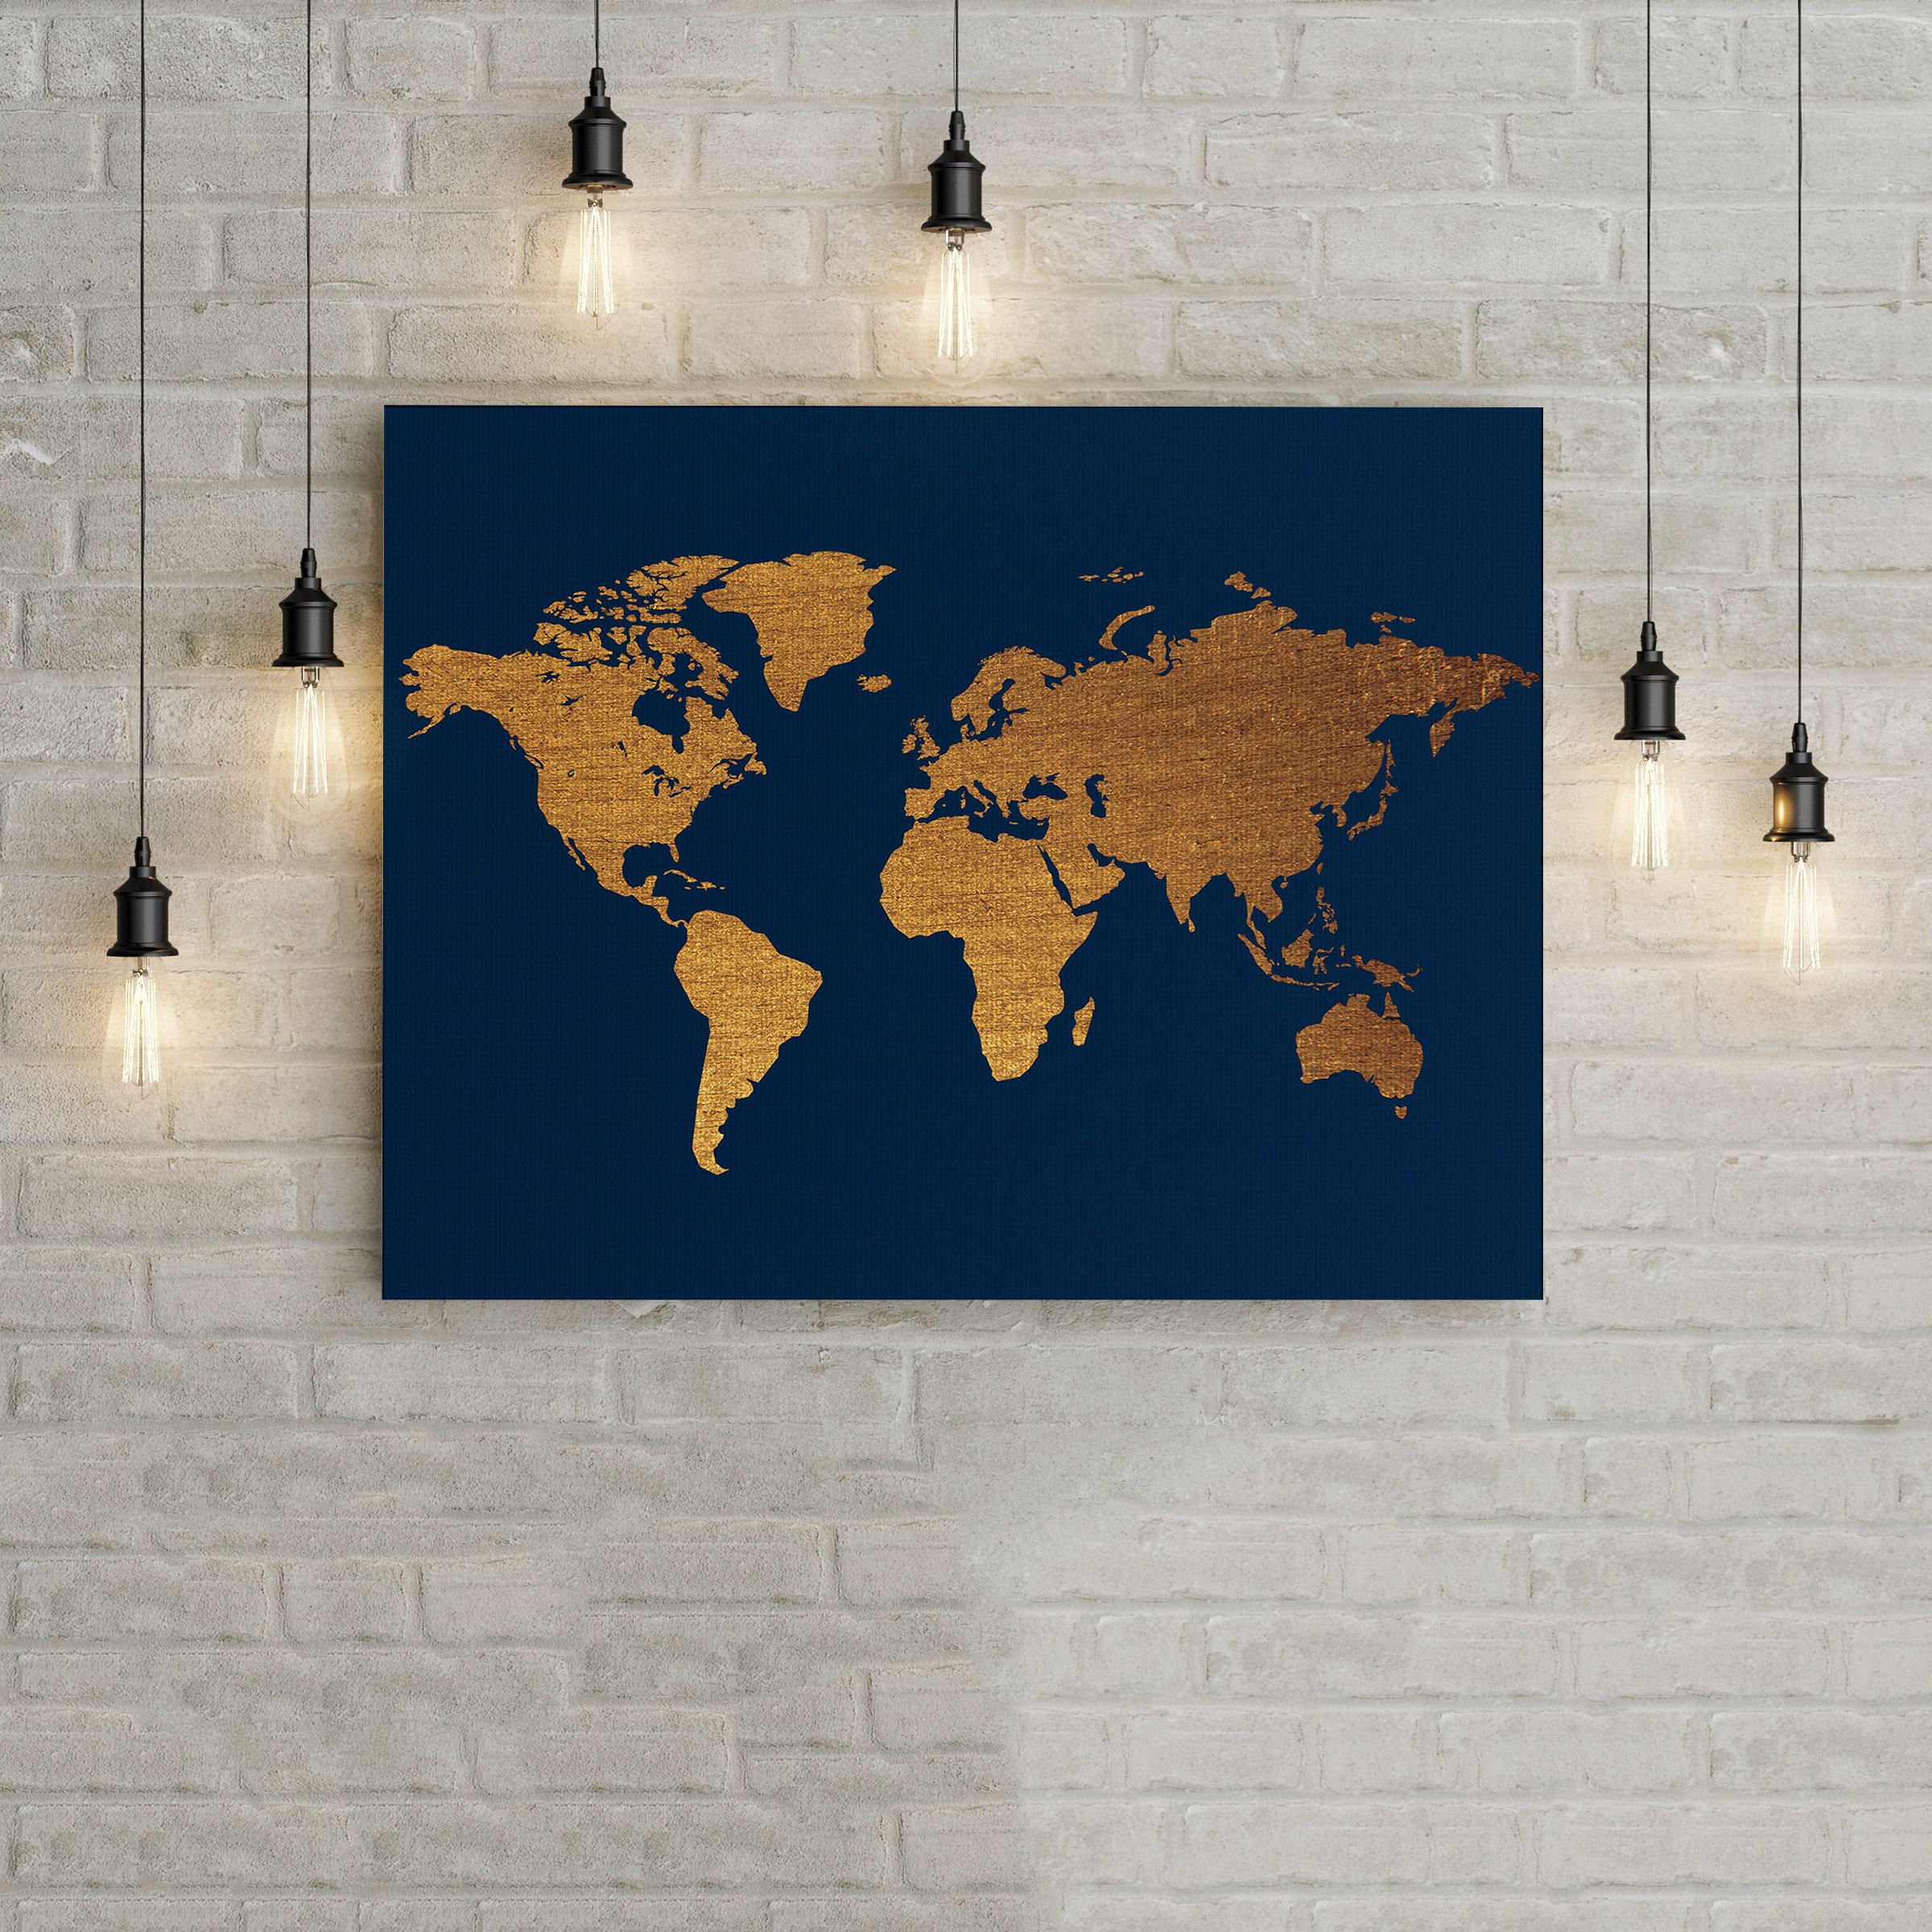 Printable gold world map gold home decor wall art office decor printable gold world map gold home decor wall art office decor office wall art modern digital download contemporary wall art printable gumiabroncs Gallery